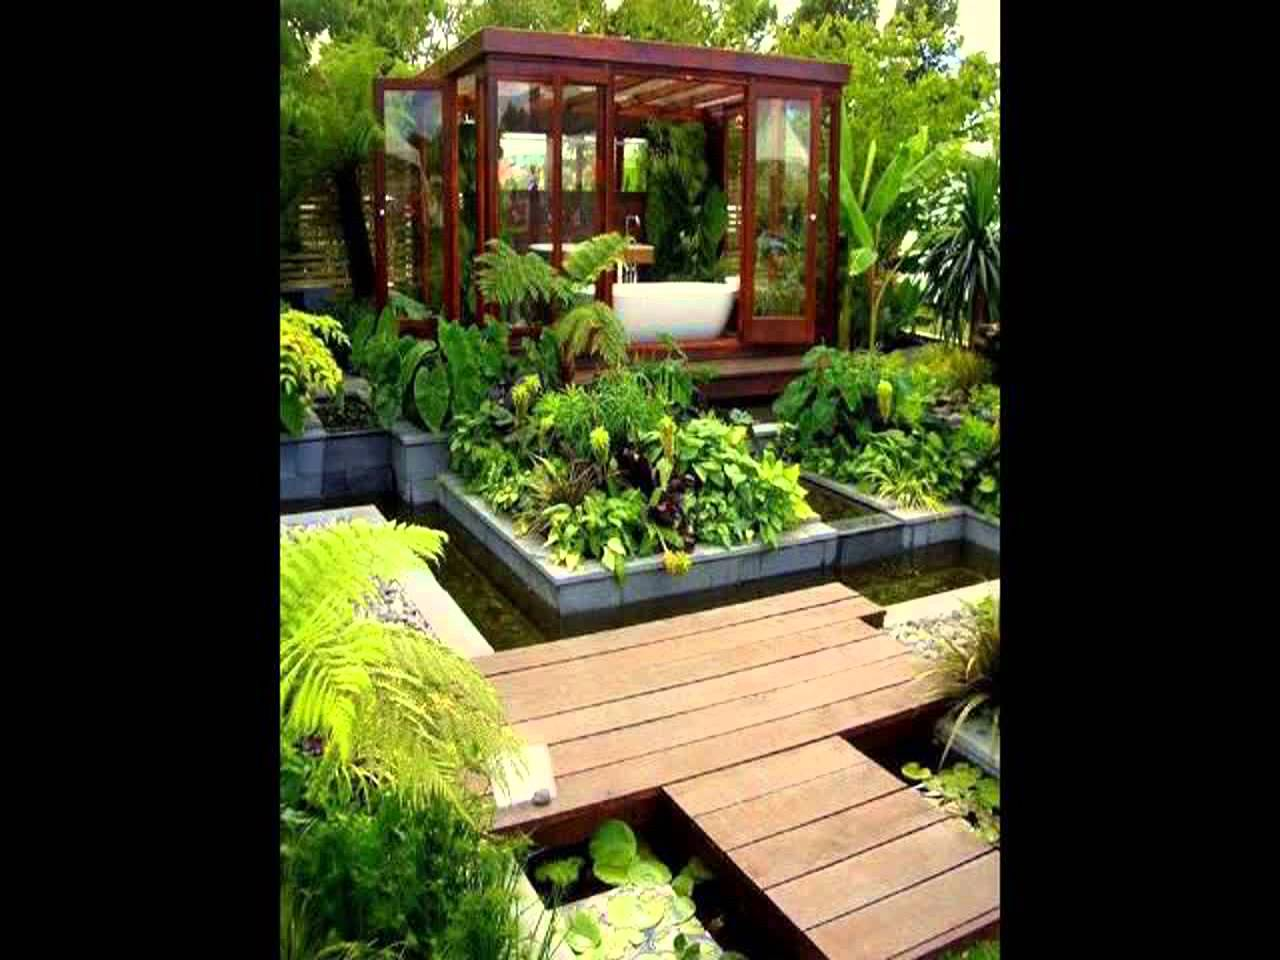 Dise o de jardines peque os gardening video forum for Estanques pequenos